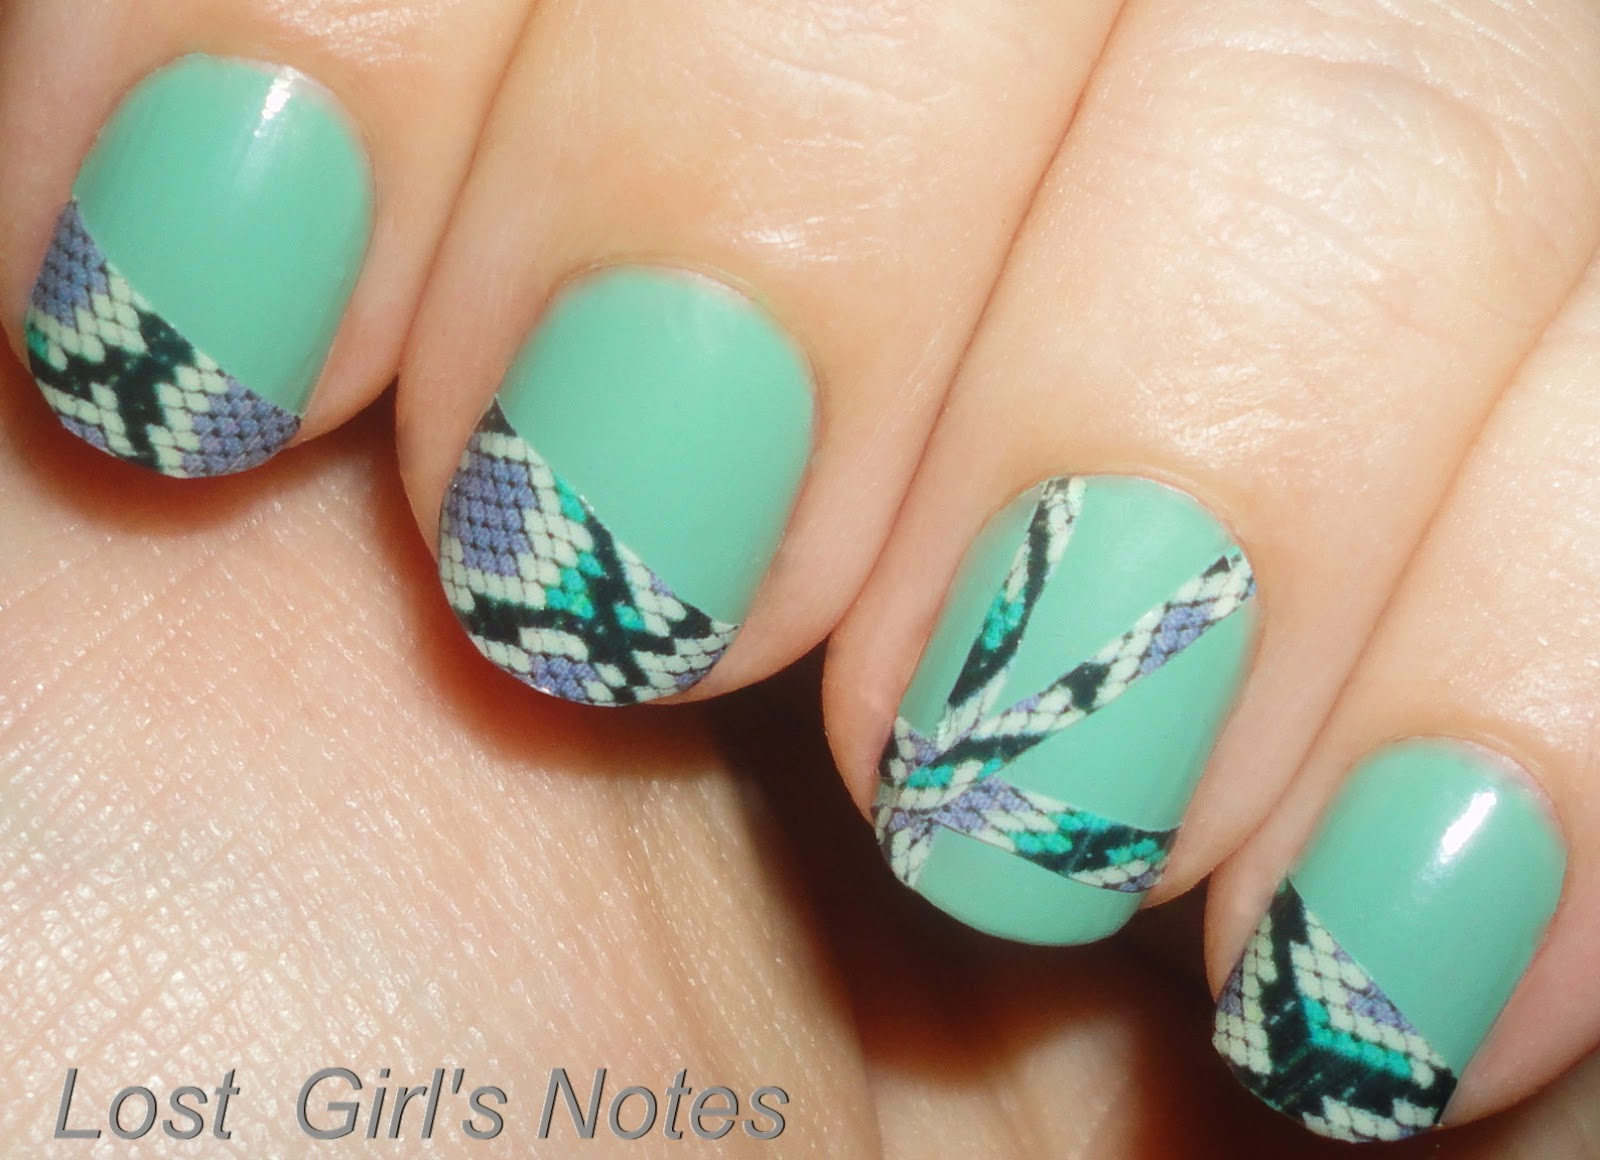 Superb Nails Art Design - Nail Picture Art